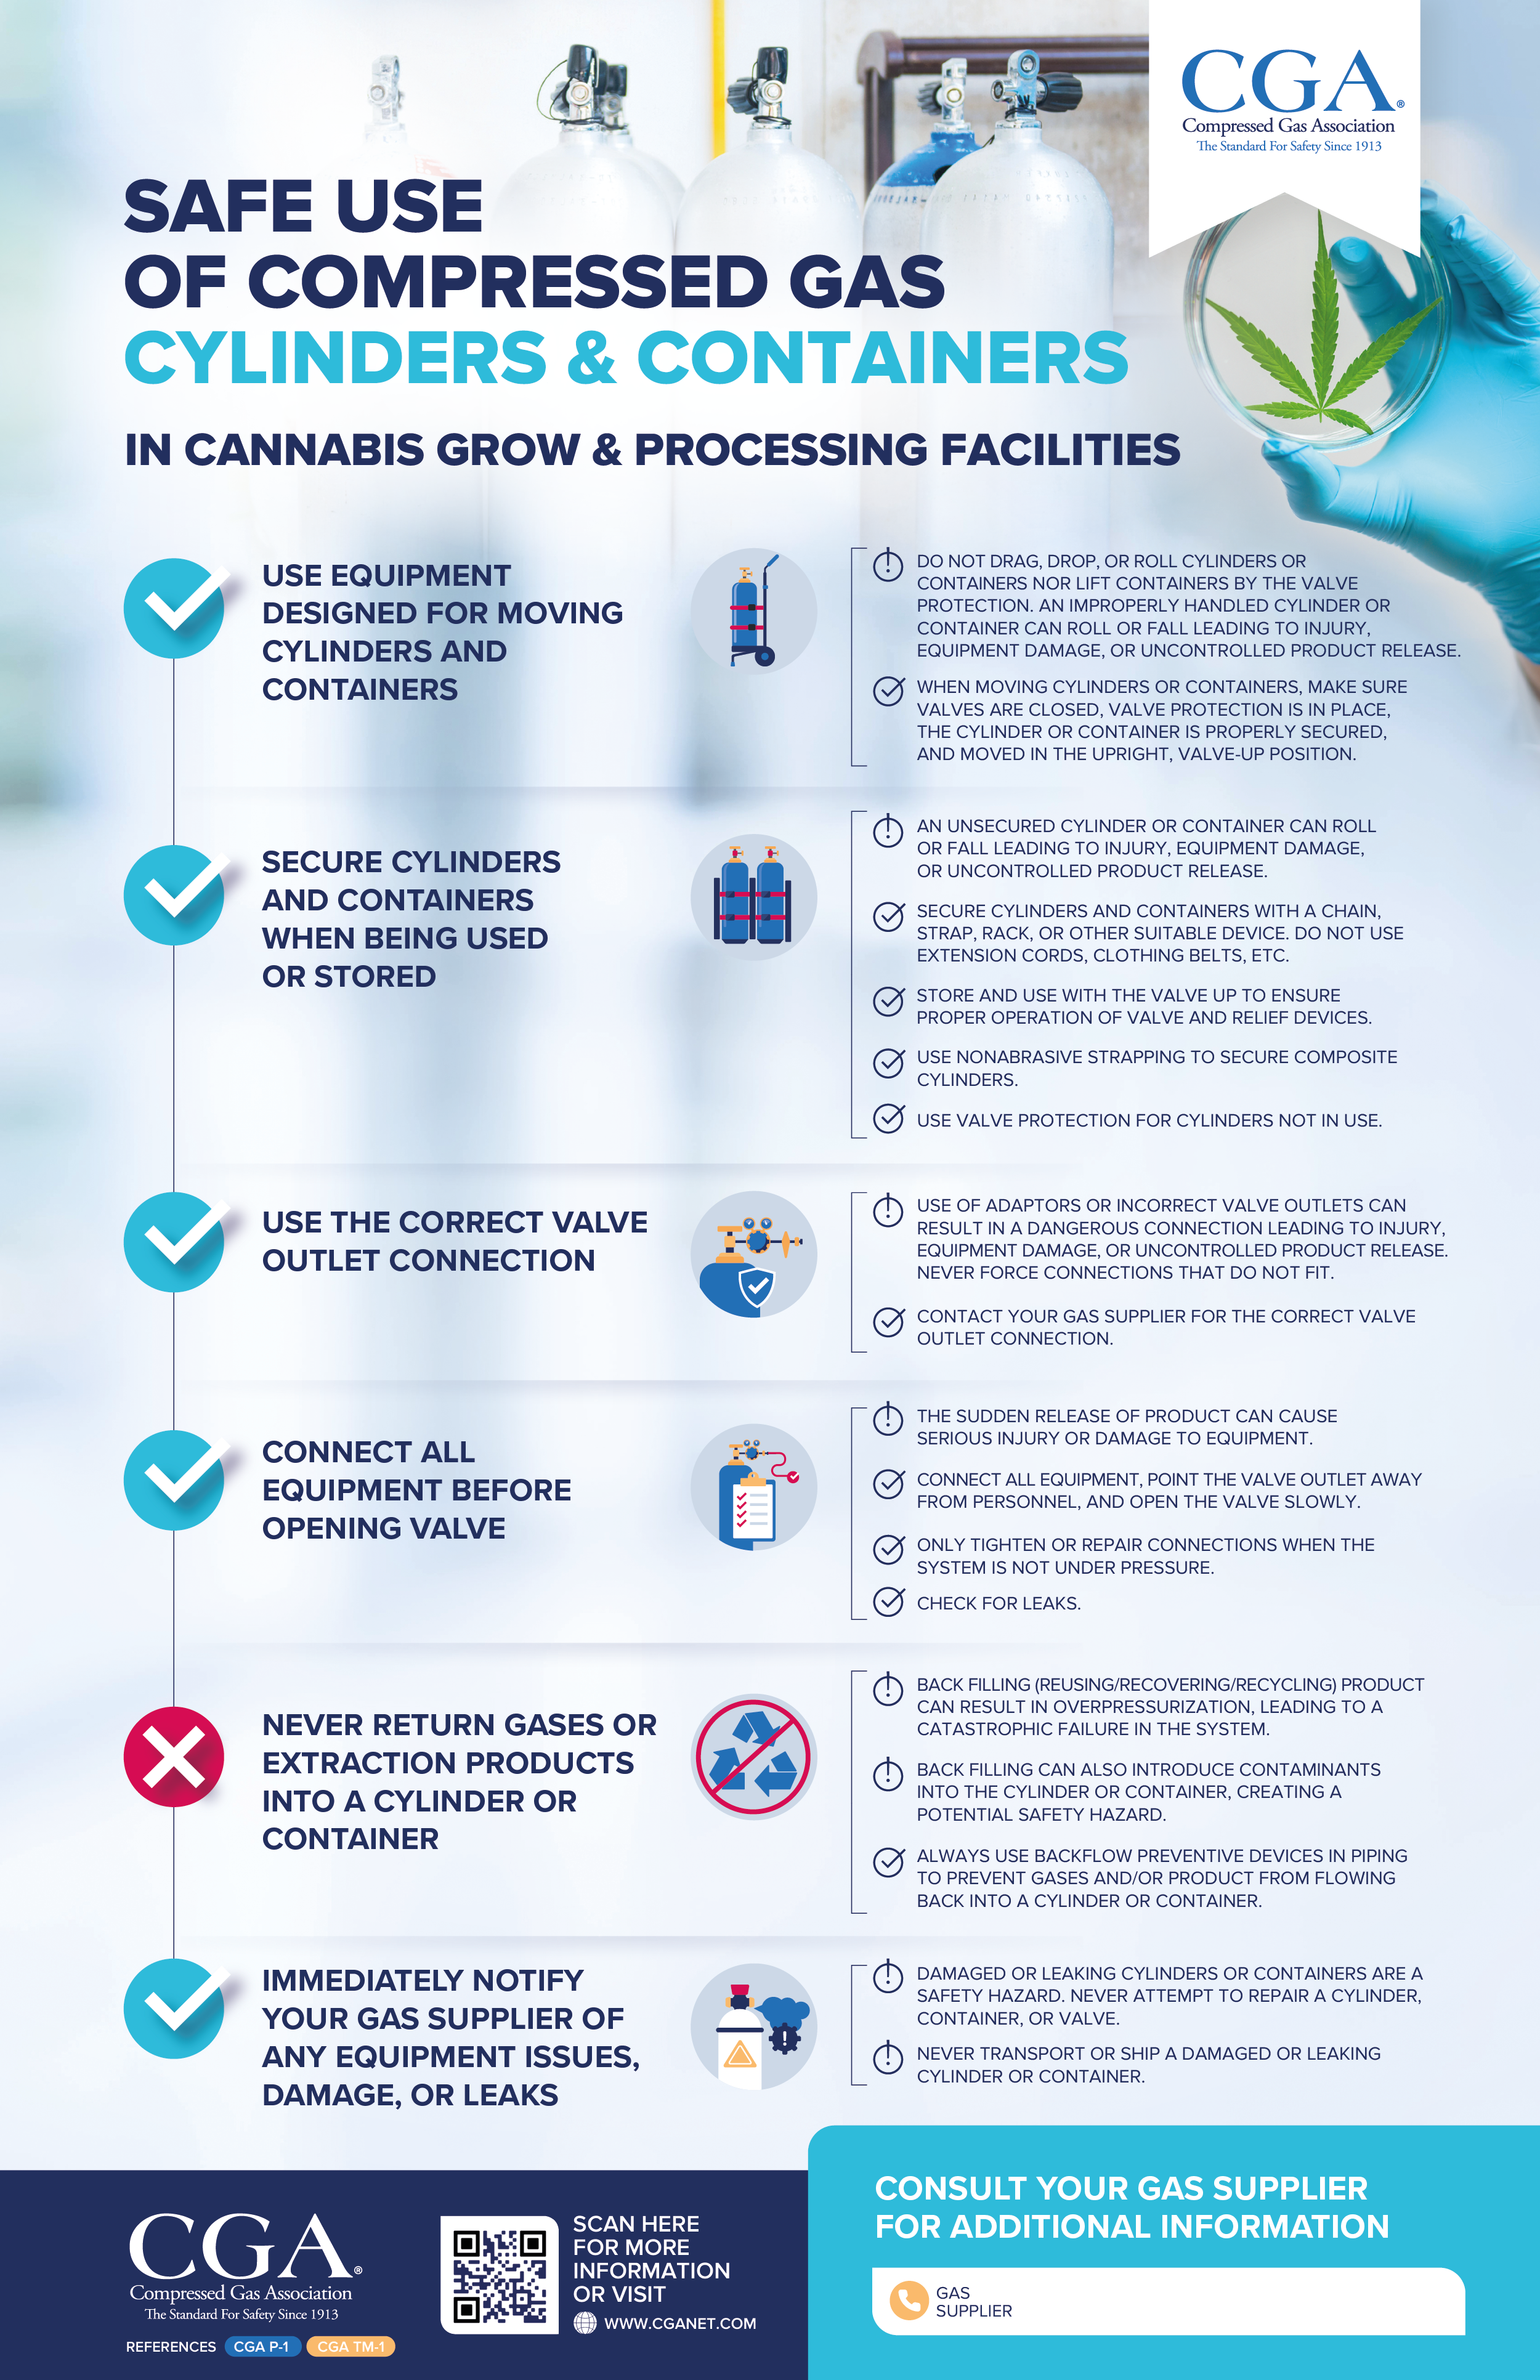 Safety poster describing safe use considerations for compressed gas cylinders and containers used in cannabis grow and processing facilities.